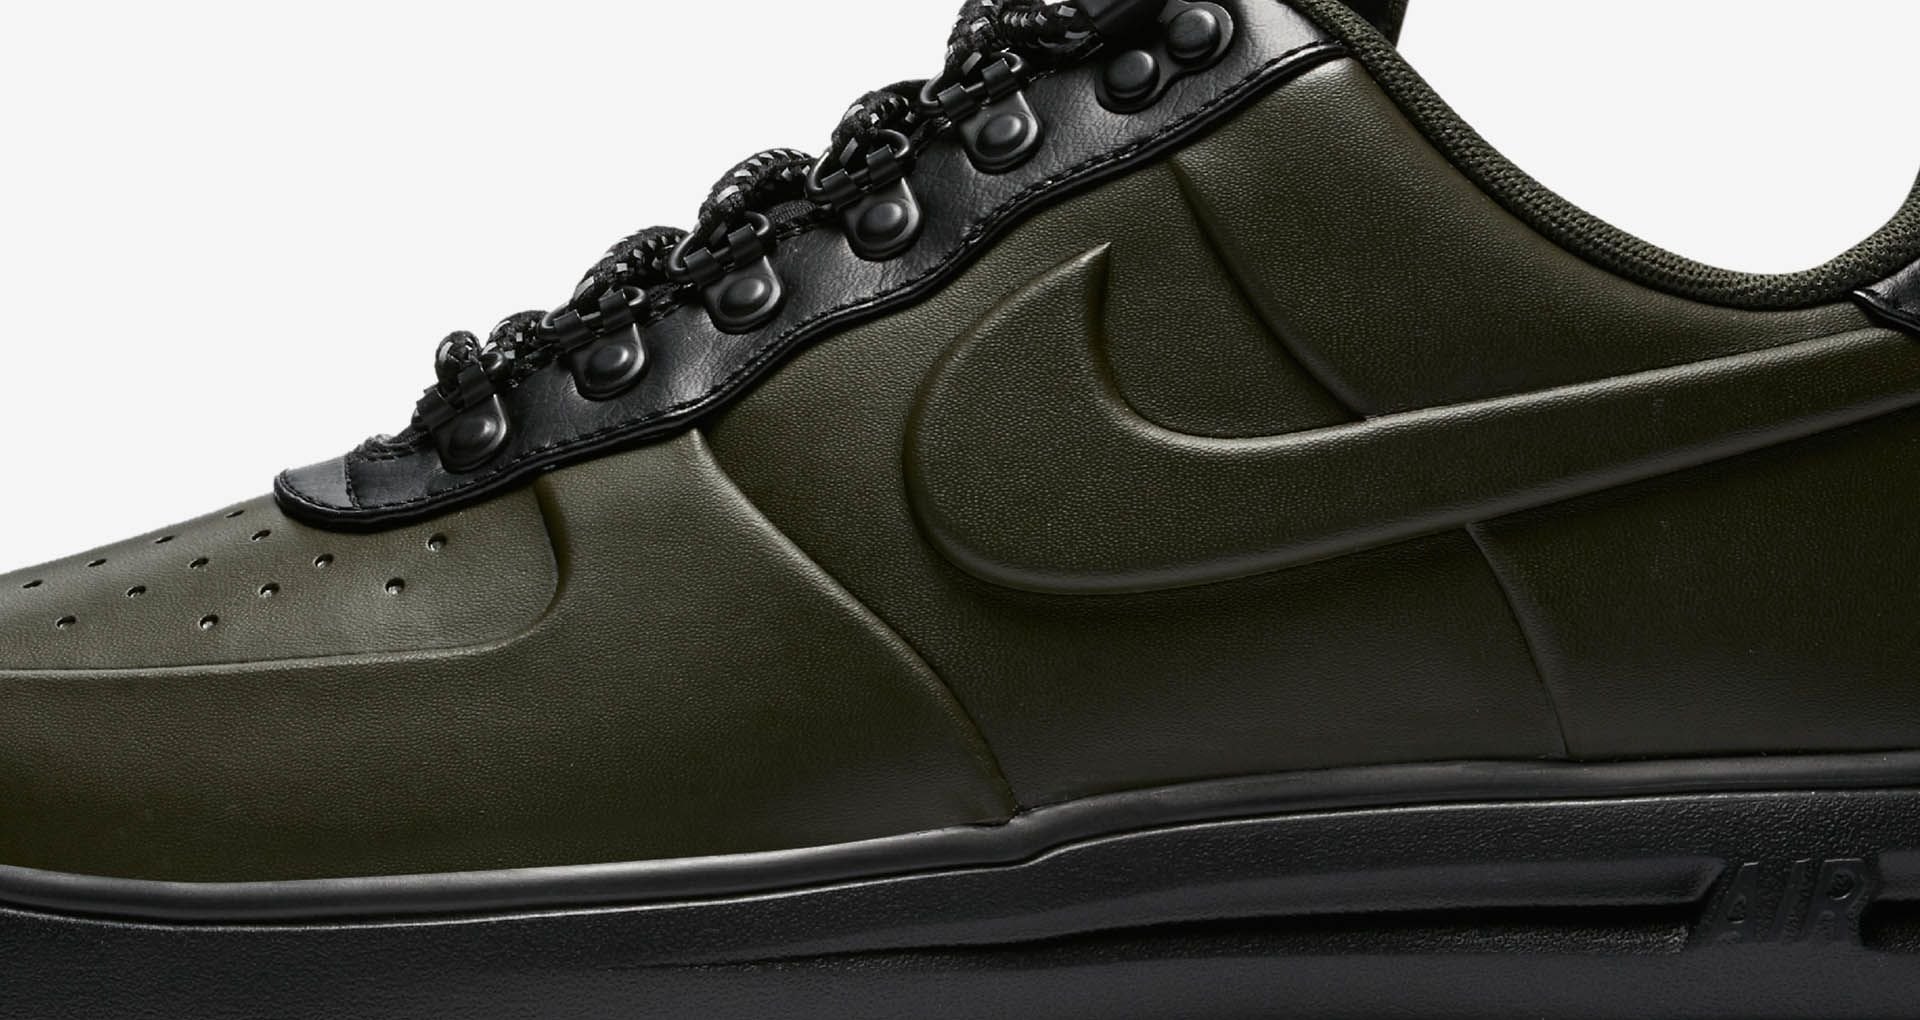 e39300c93876c3 ... Nike Lunar Force 1 Duckboot Low Sequoia and Black Release Date ...